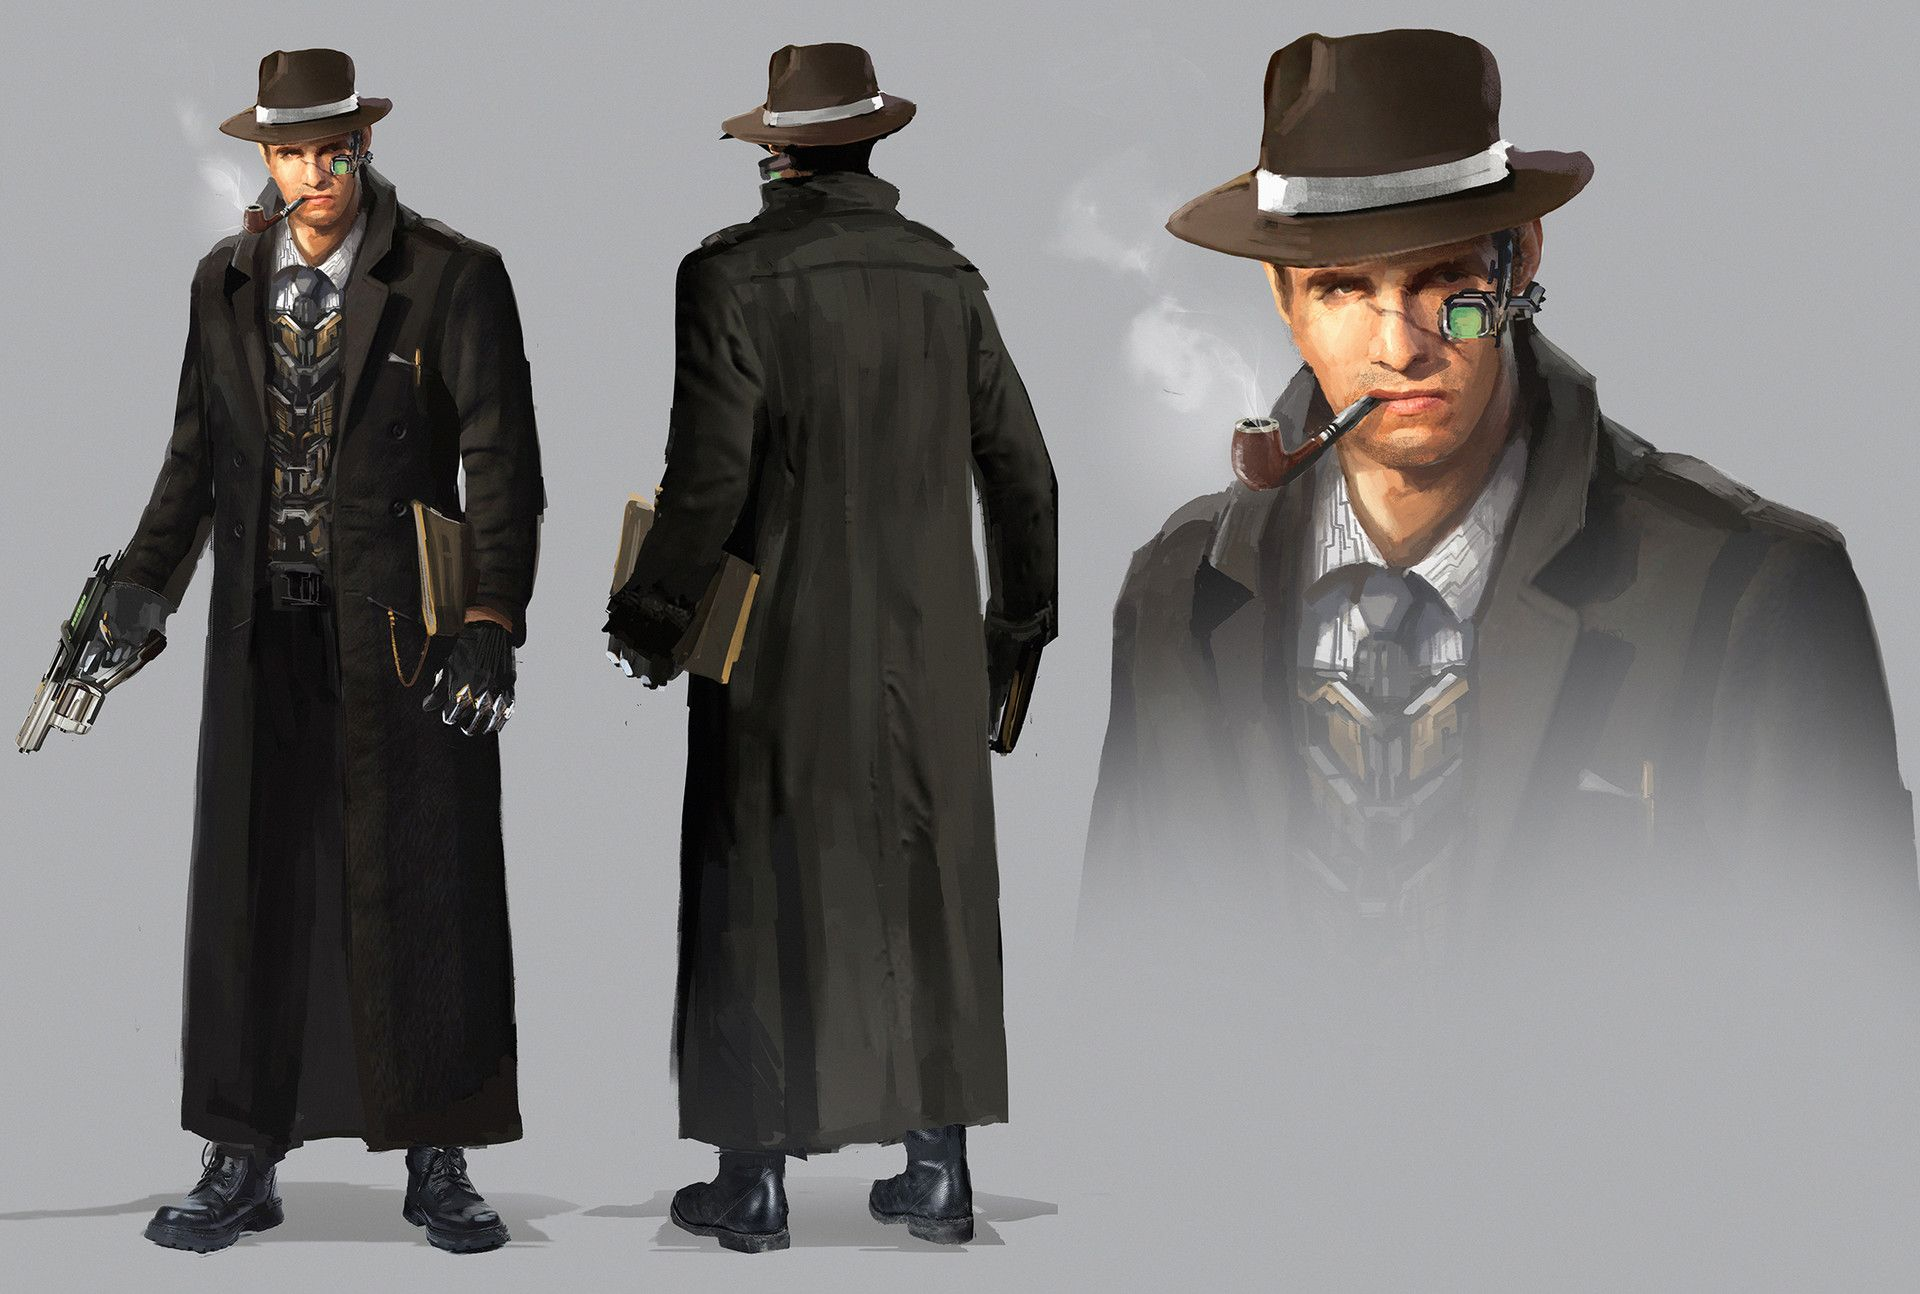 49+ Detective characters information